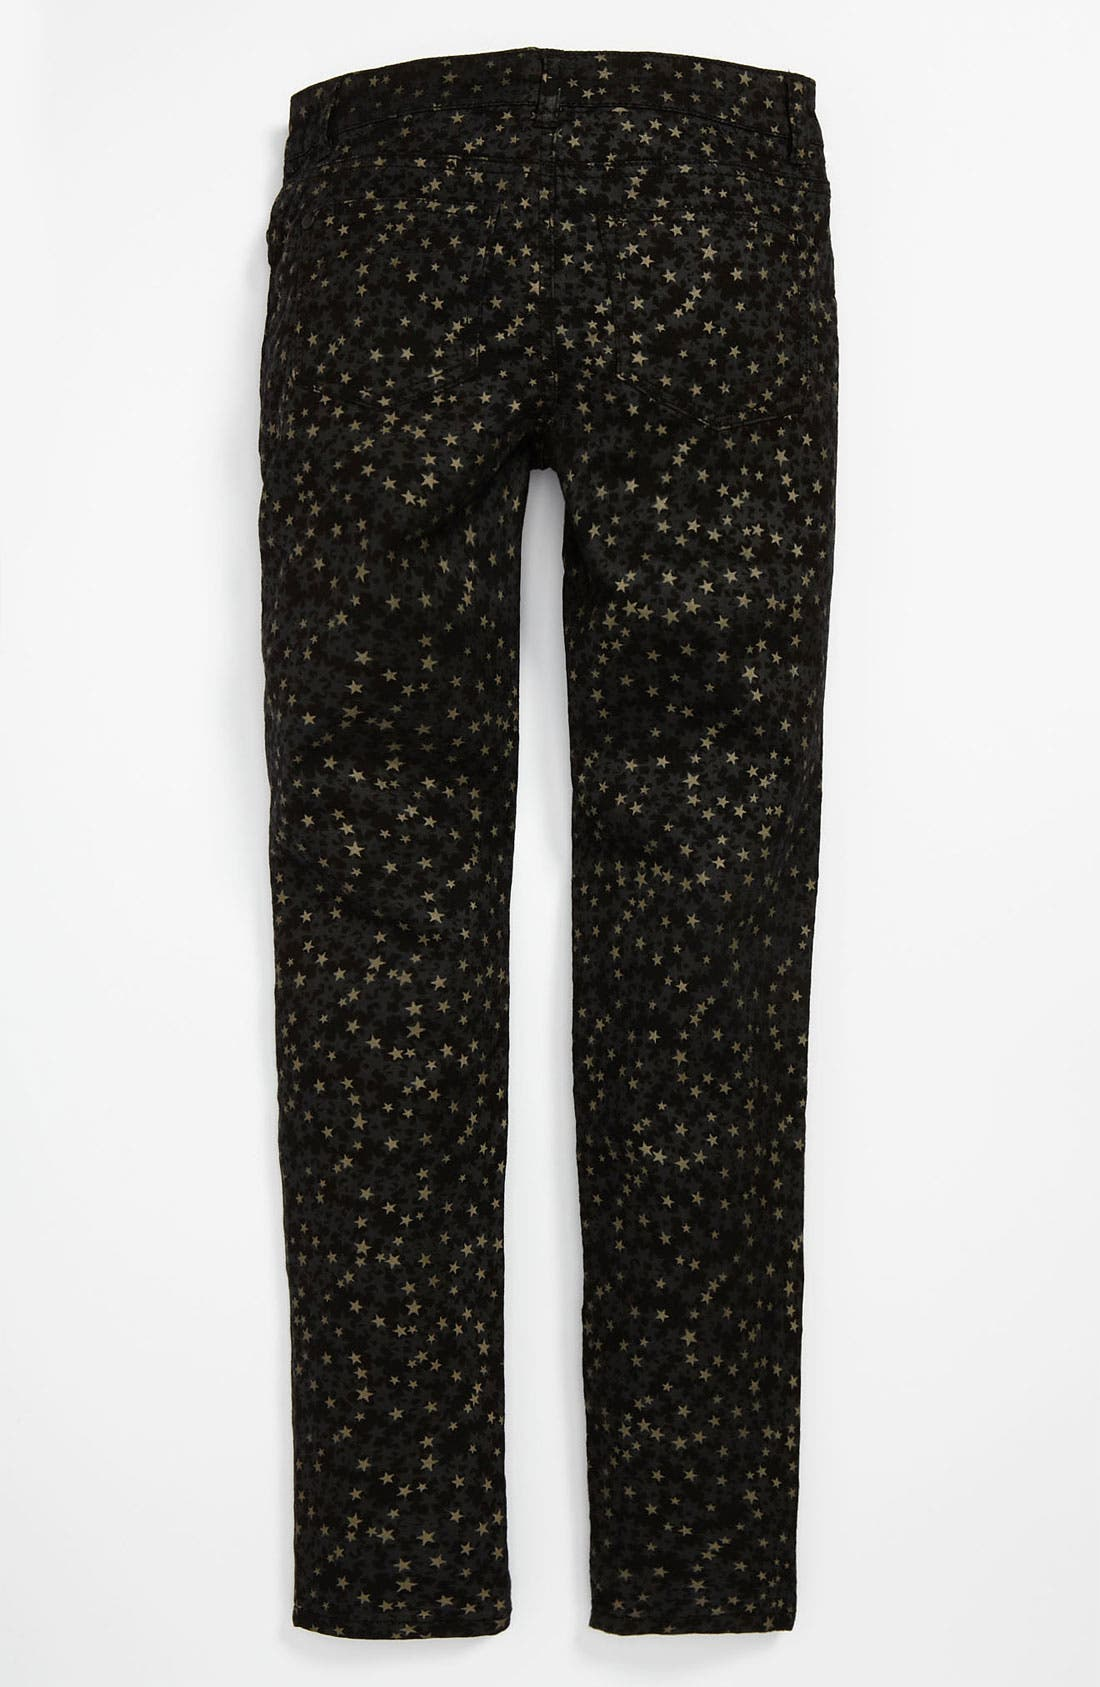 Alternate Image 1 Selected - Fire 'Galaxy' Skinny Leg Jeans (Big Girls)